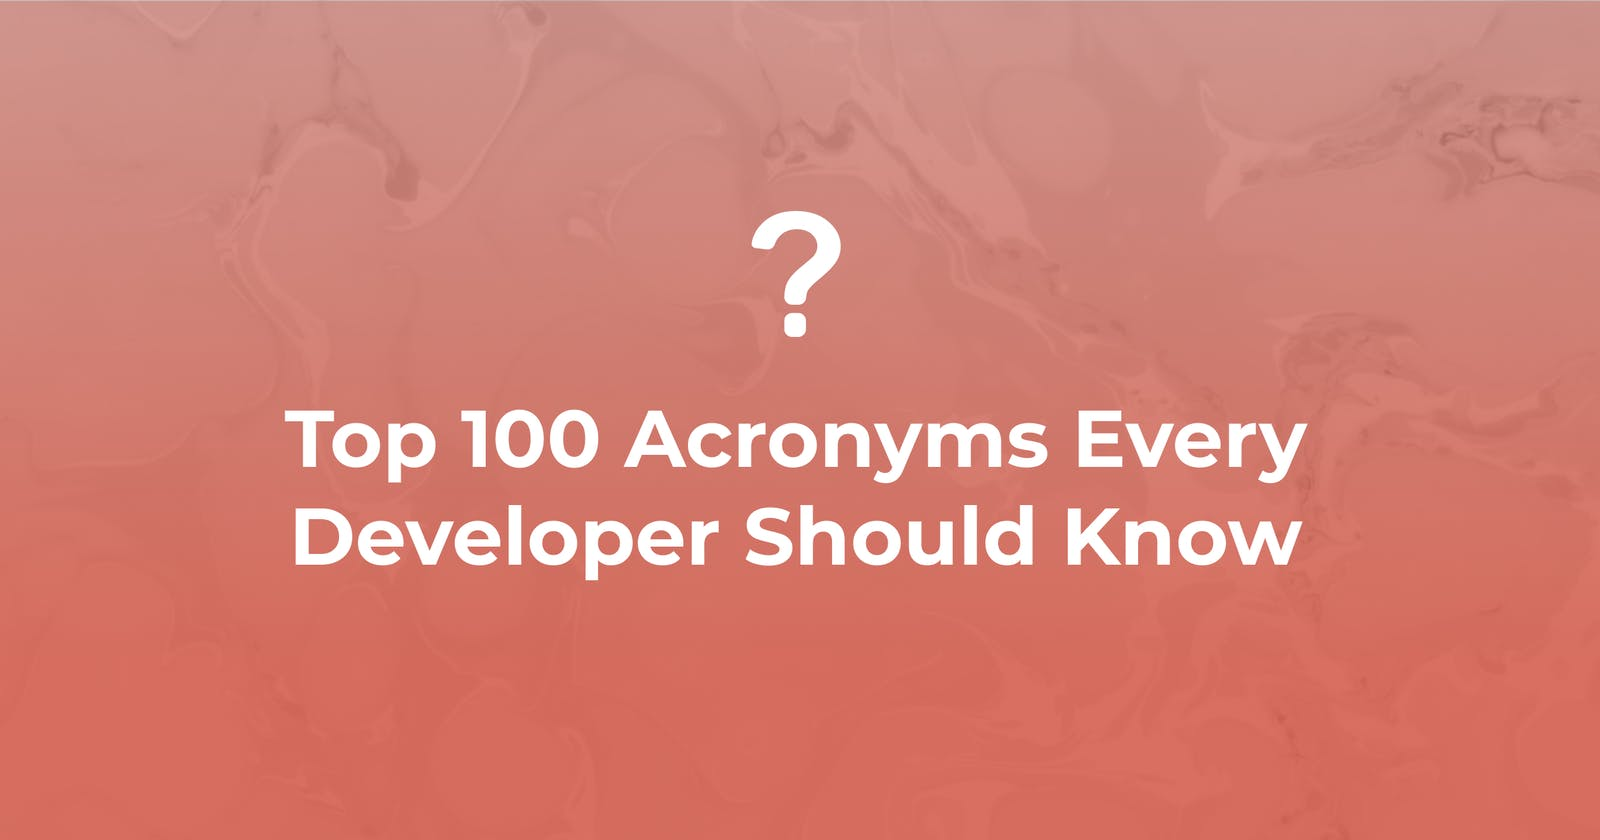 Top 100 Acronyms Every Developer Should Know